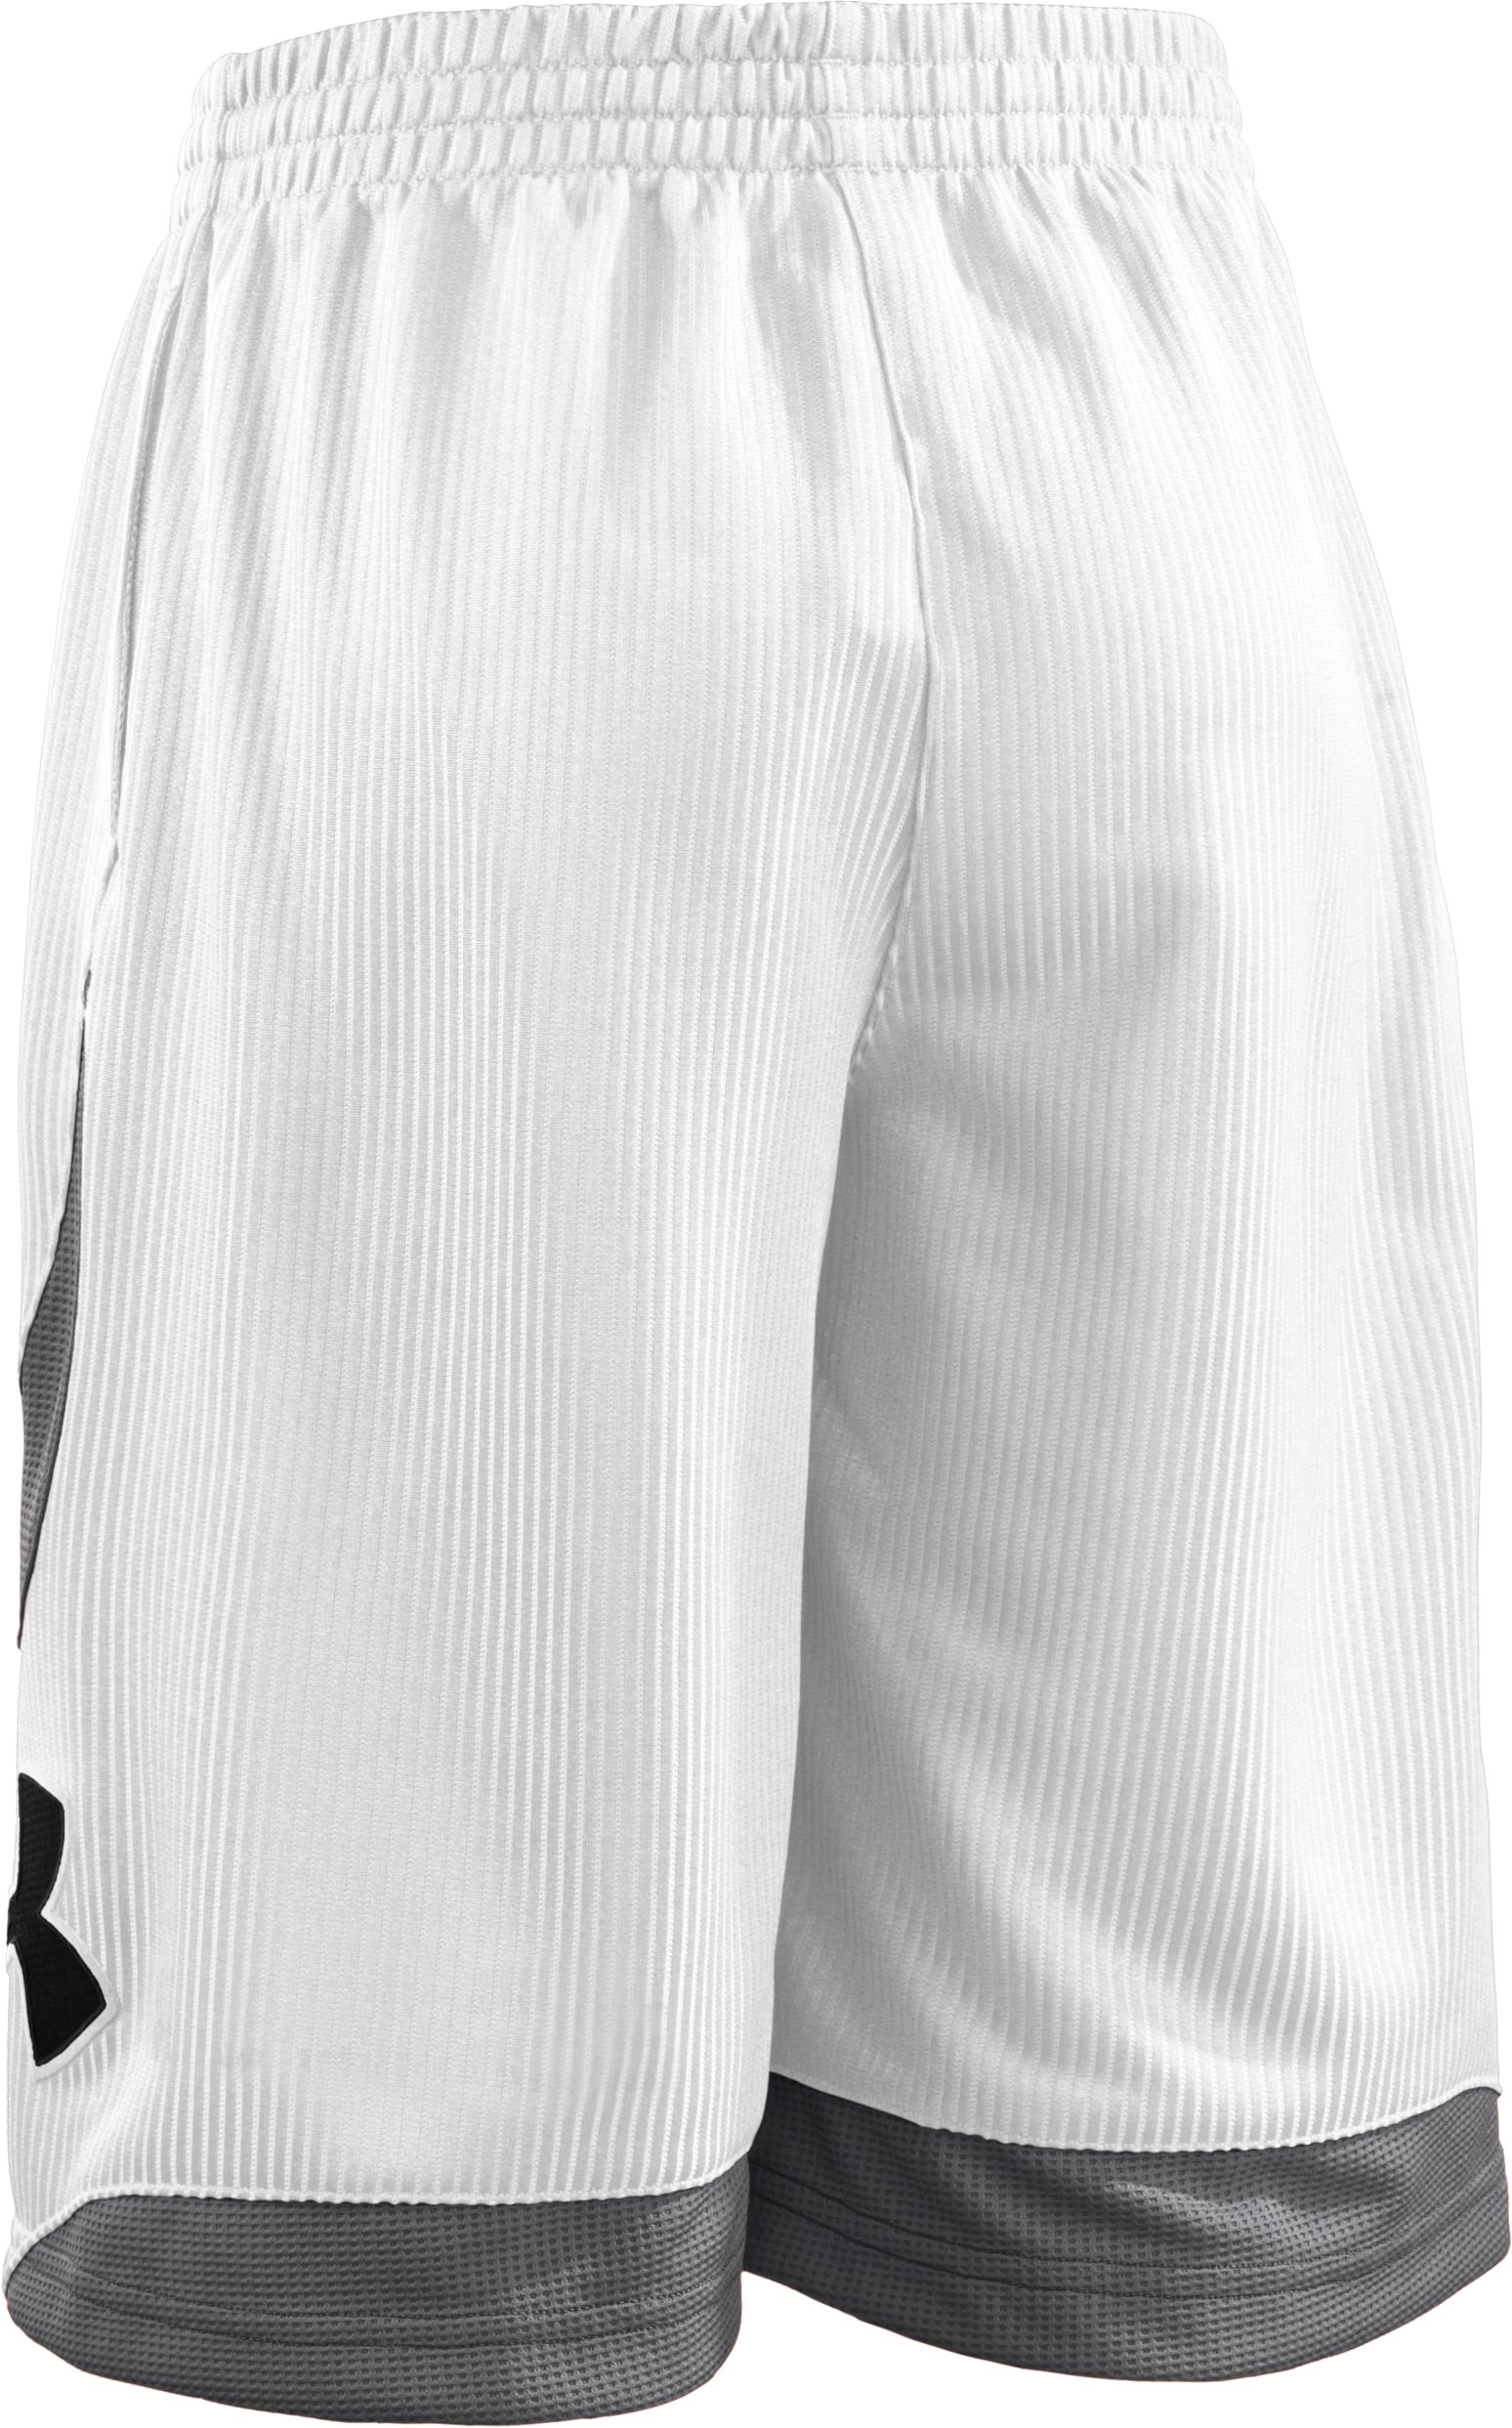 "Boys' Valkyrie 10"" Basketball Shorts, White, undefined"